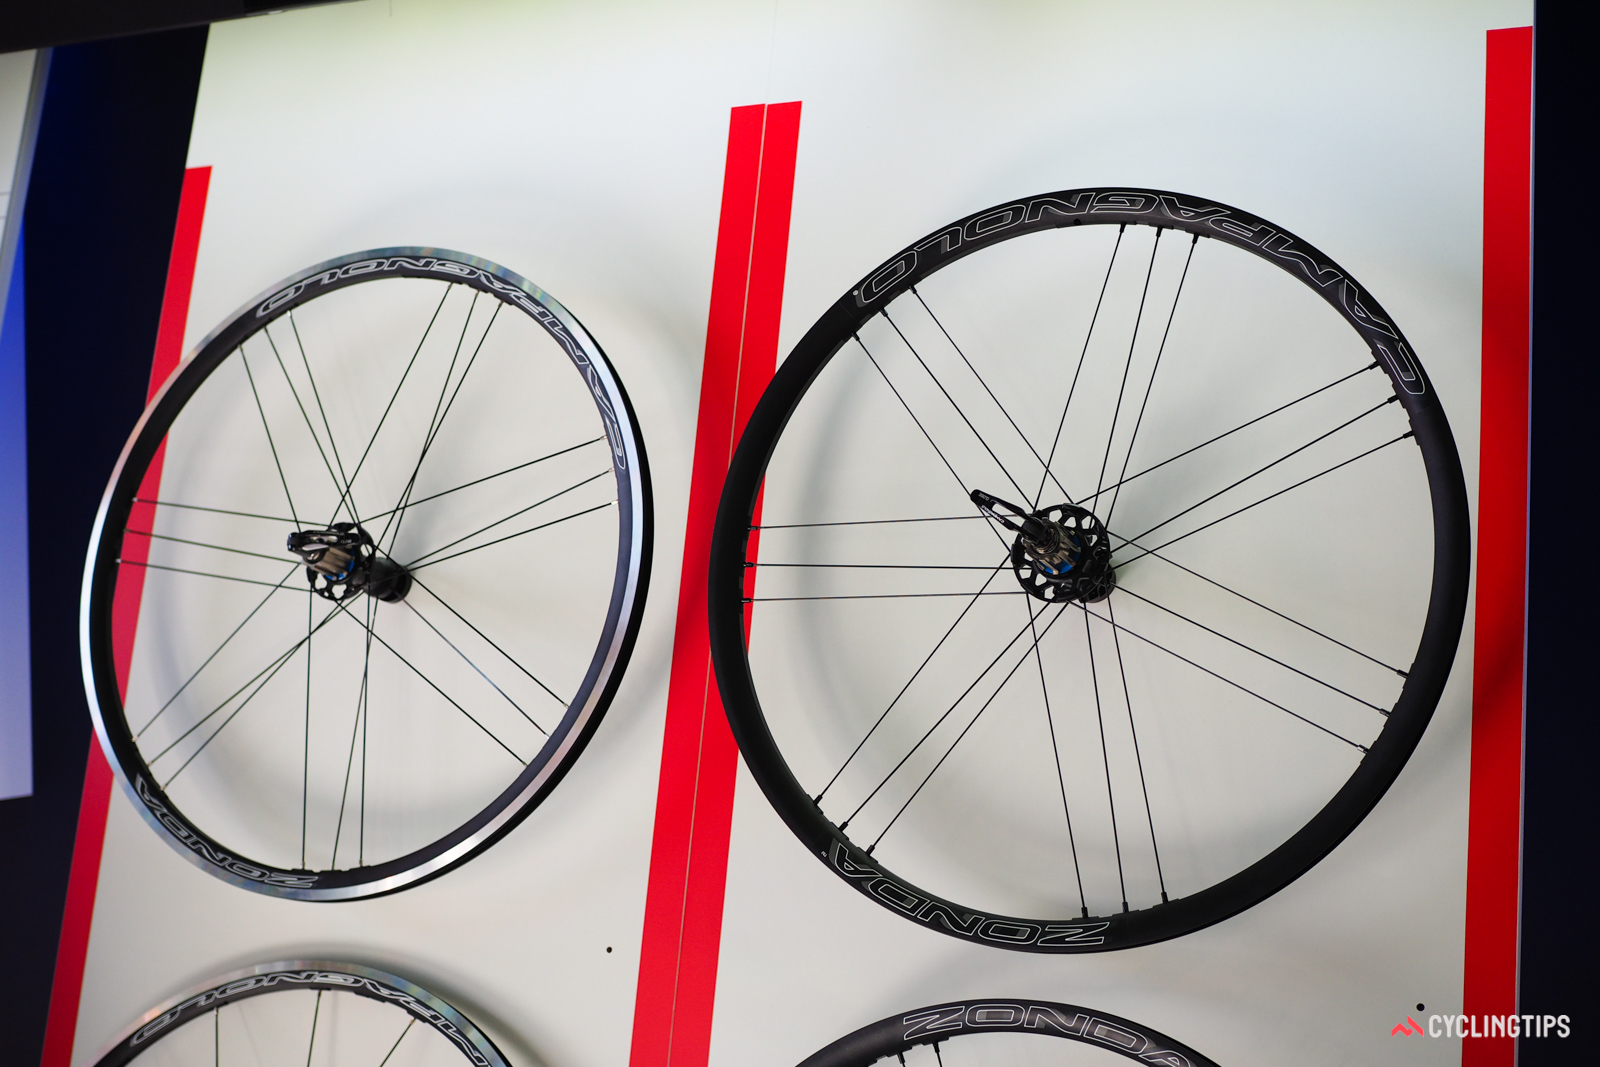 Like its sister wheel company, Fulcrum, Campagnolo has widened most of its wheel range, but only slightly so with 17mm internal widths.